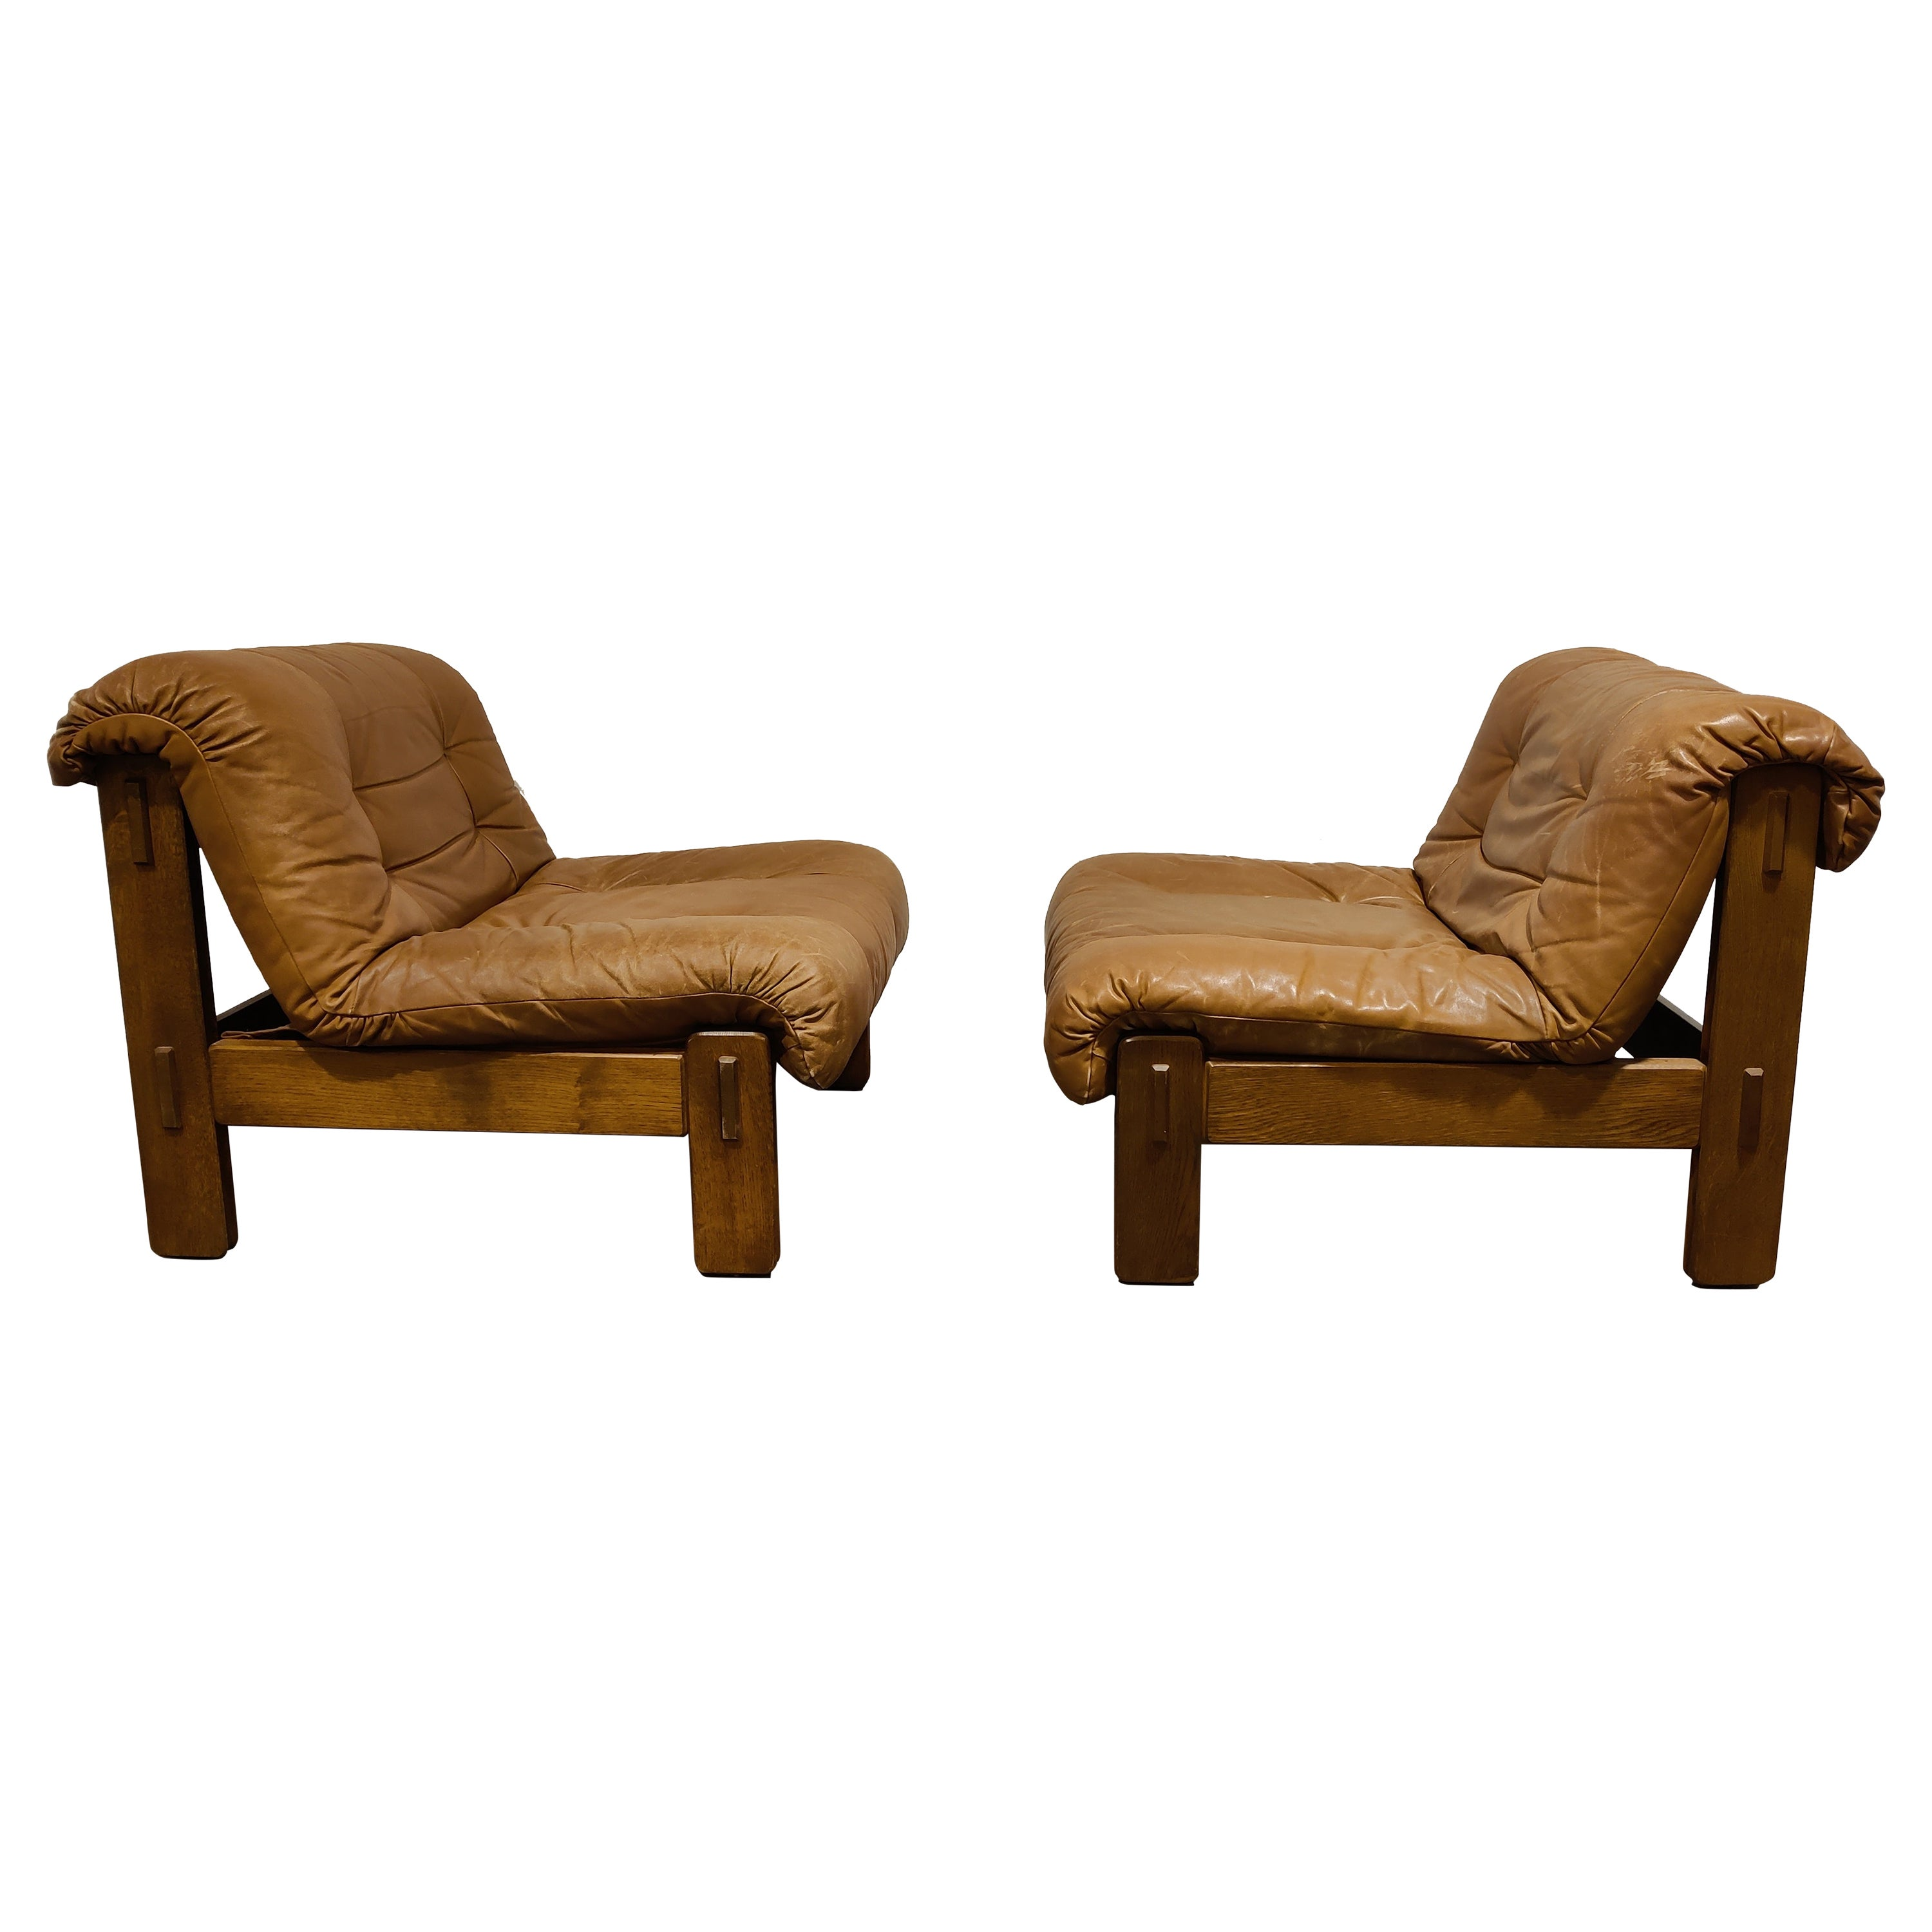 Vintage Leather Lounge Chairs, 1970s